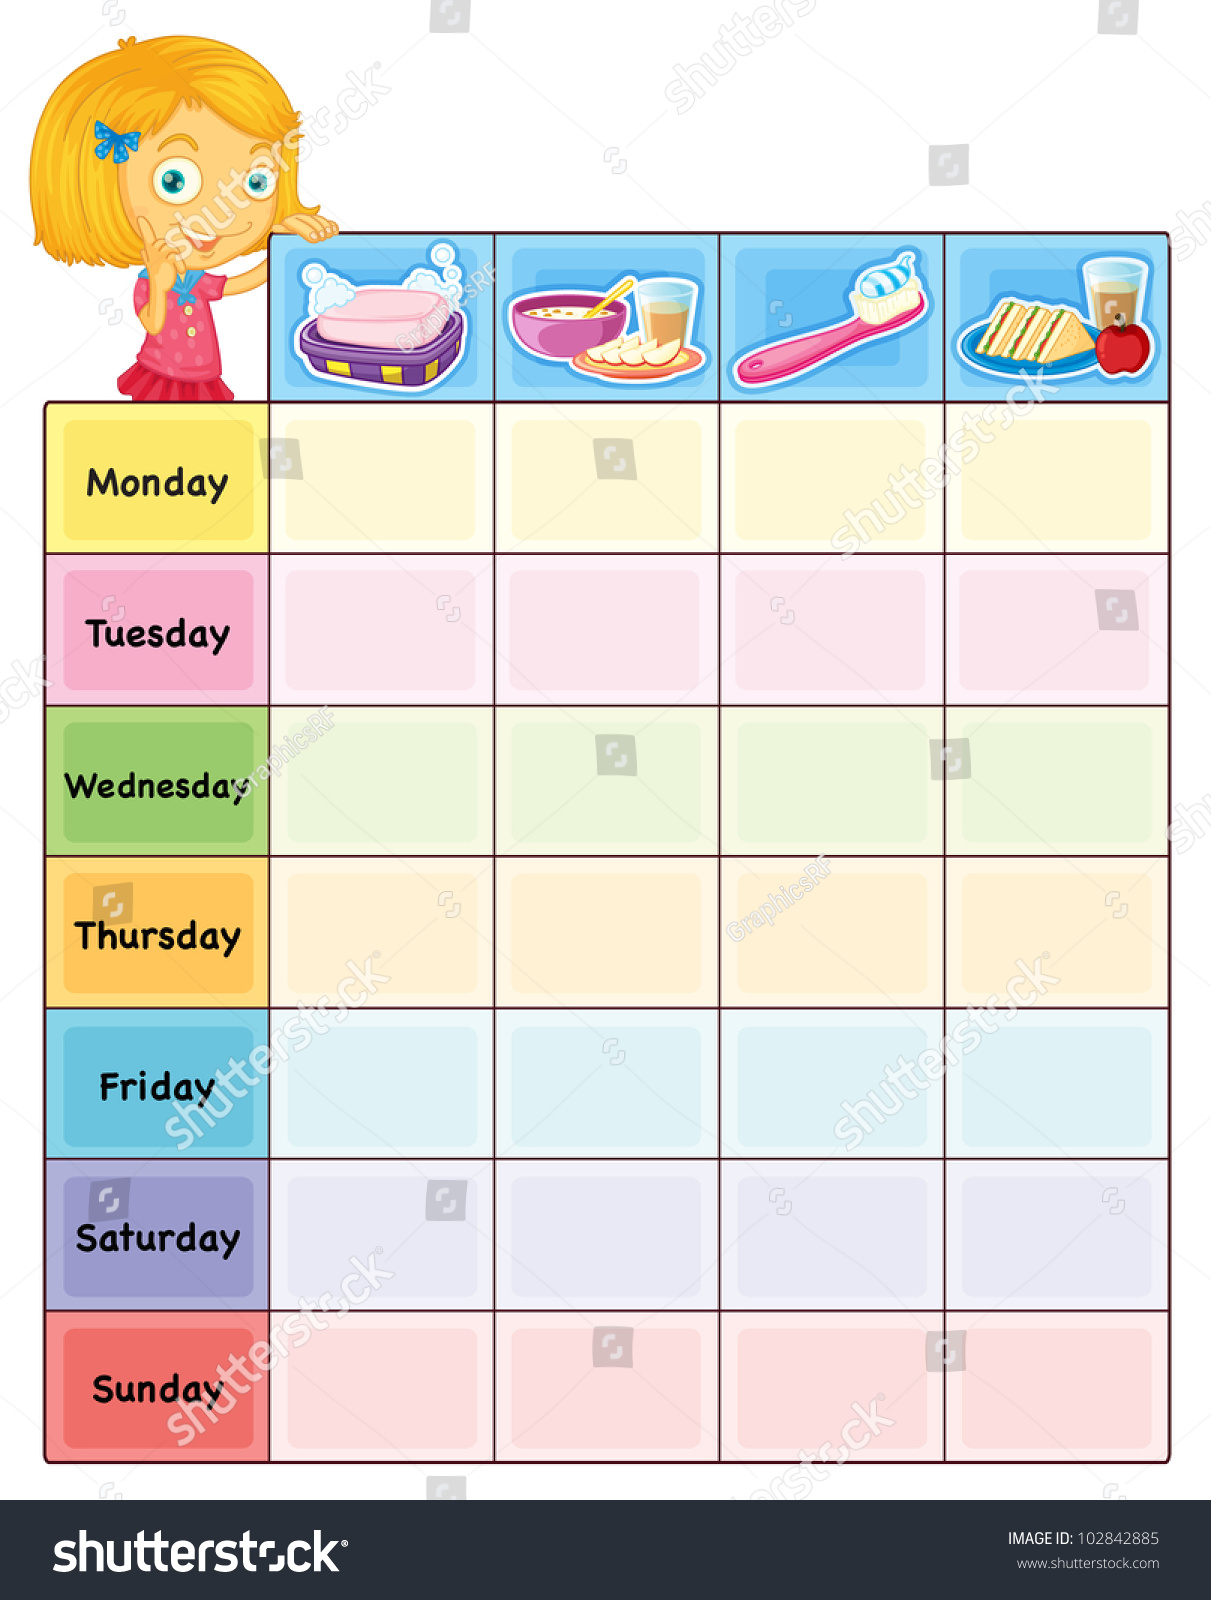 Illustration Daily Routine Chart Eps Vector Stock Illustration ...